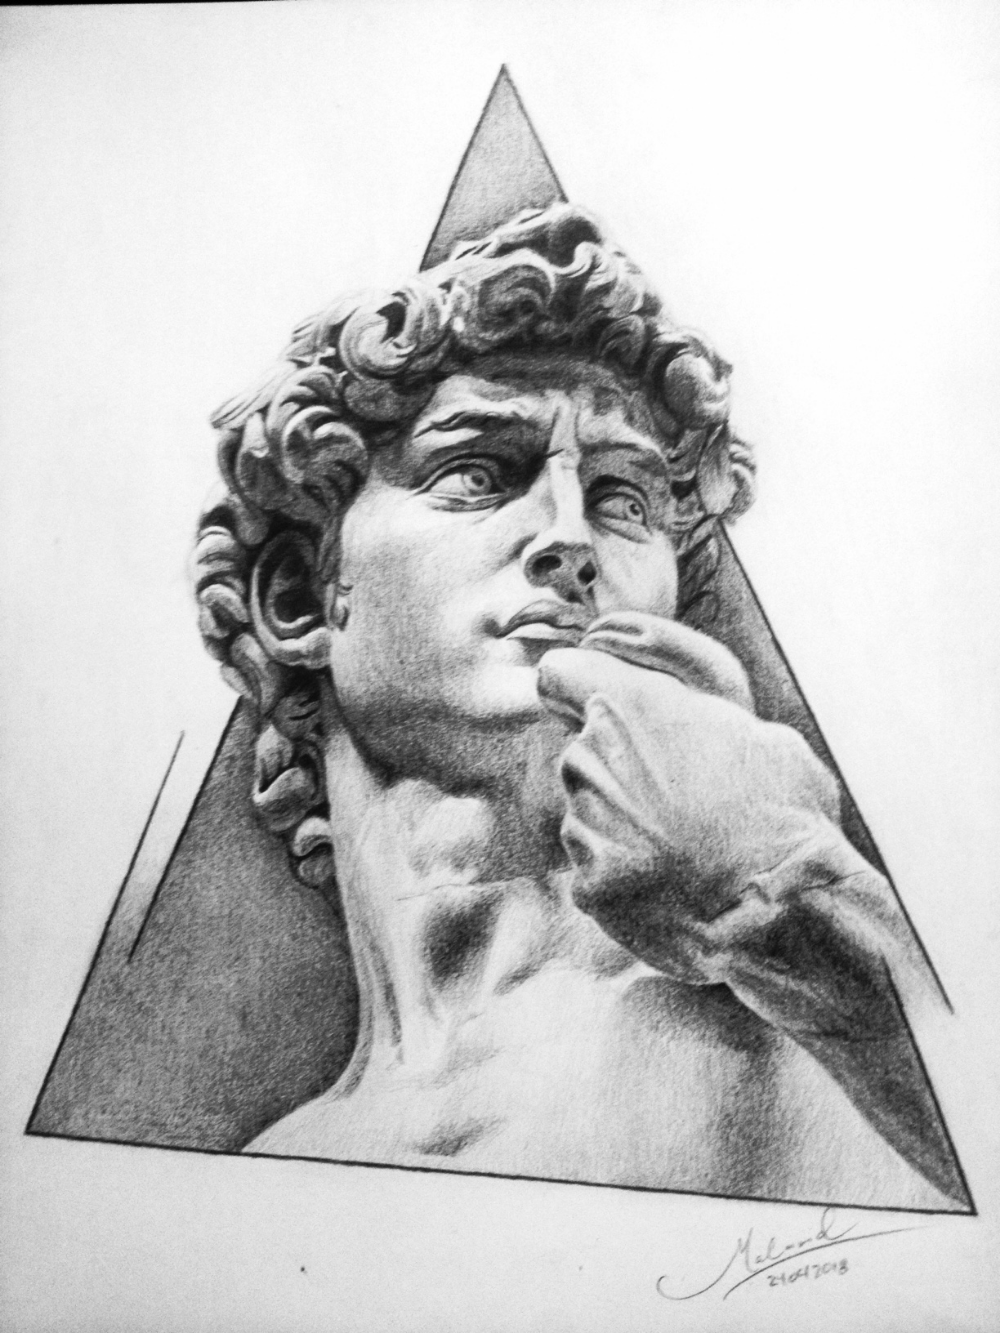 Art Section David The Miguel Angel Realistic Drawing Steemit Realistic Drawings Angel Drawing Miguel Angel